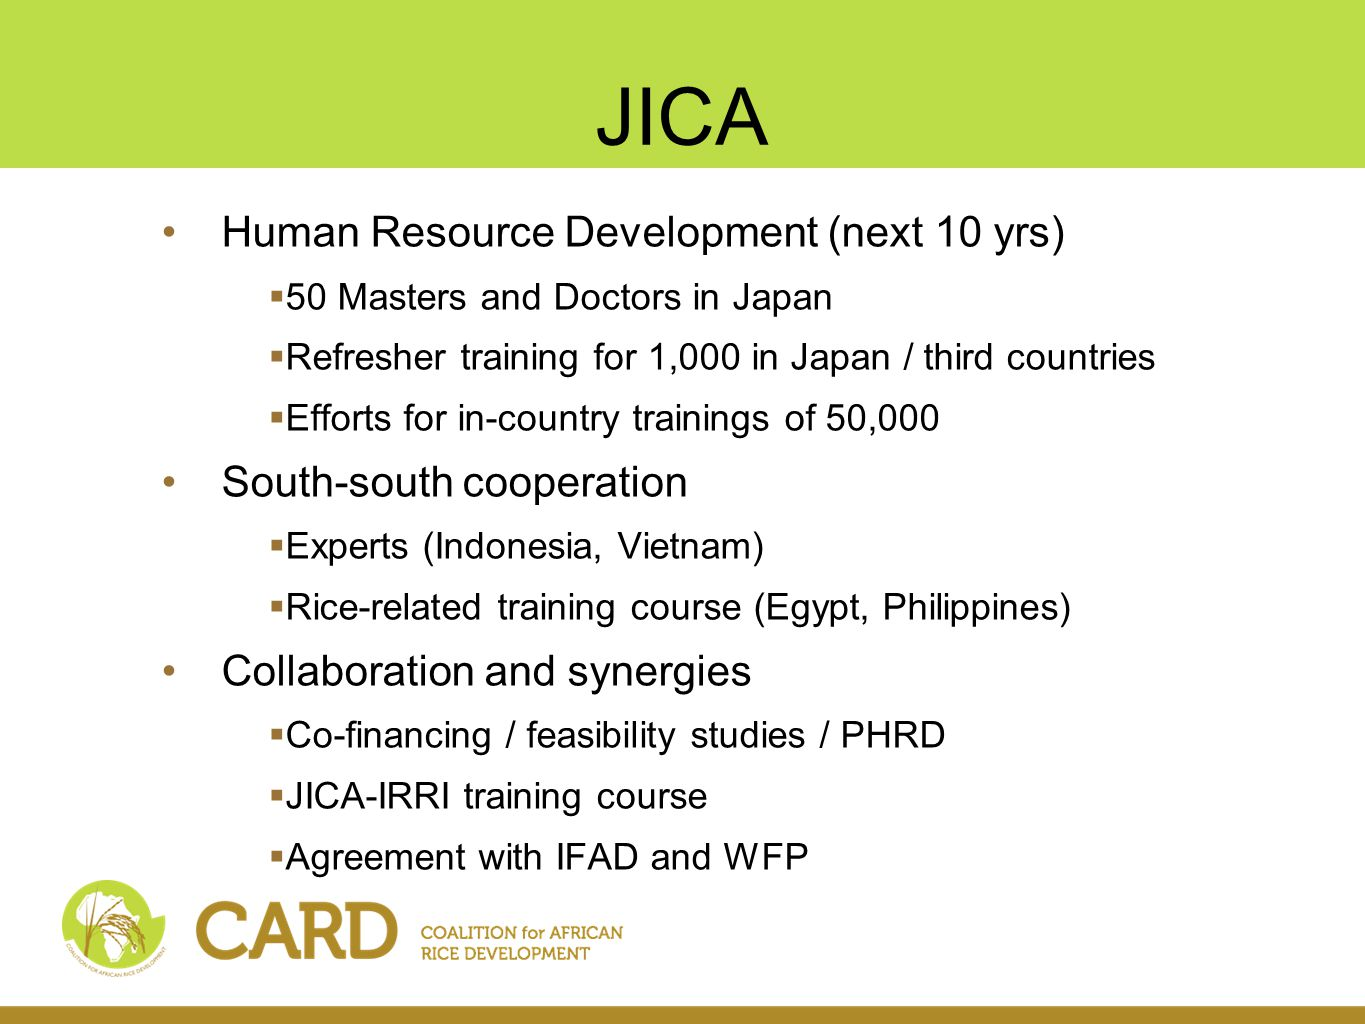 JICA Human Resource Development (next 10 yrs)  50 Masters and Doctors in Japan  Refresher training for 1,000 in Japan / third countries  Efforts for in-country trainings of 50,000 South-south cooperation  Experts (Indonesia, Vietnam)  Rice-related training course (Egypt, Philippines) Collaboration and synergies  Co-financing / feasibility studies / PHRD  JICA-IRRI training course  Agreement with IFAD and WFP